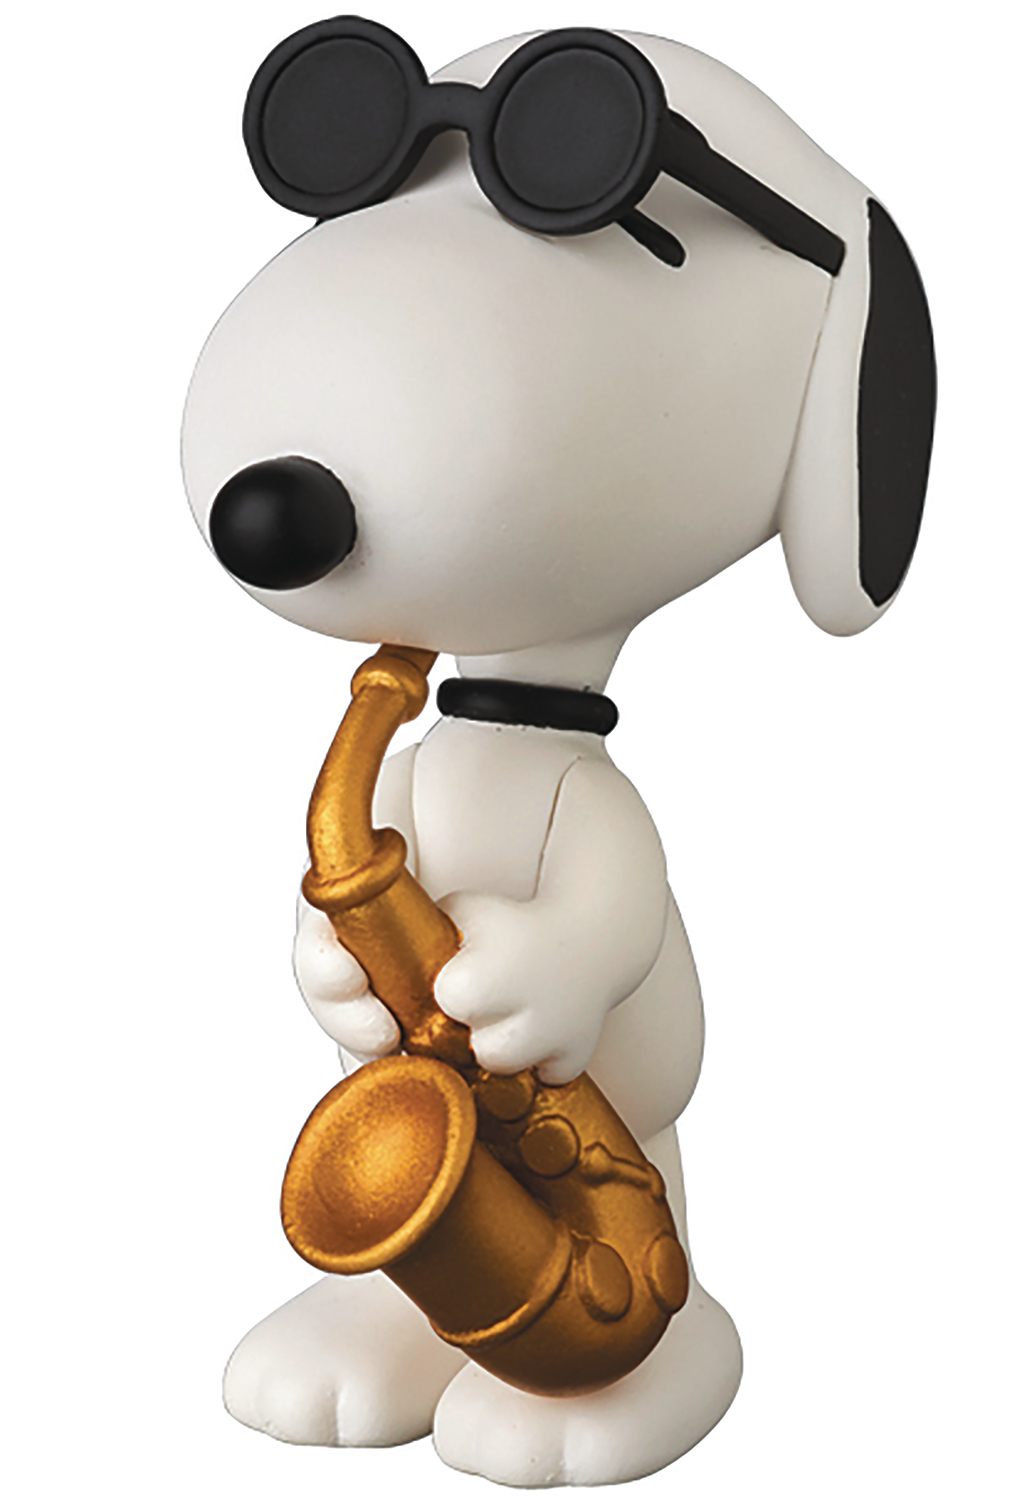 d1b6f6d62e MEDICOM TOY CORPORATION. PEANUTS SAXOPHONE PLAYER SNOOPY UDF FIG SERIES 6